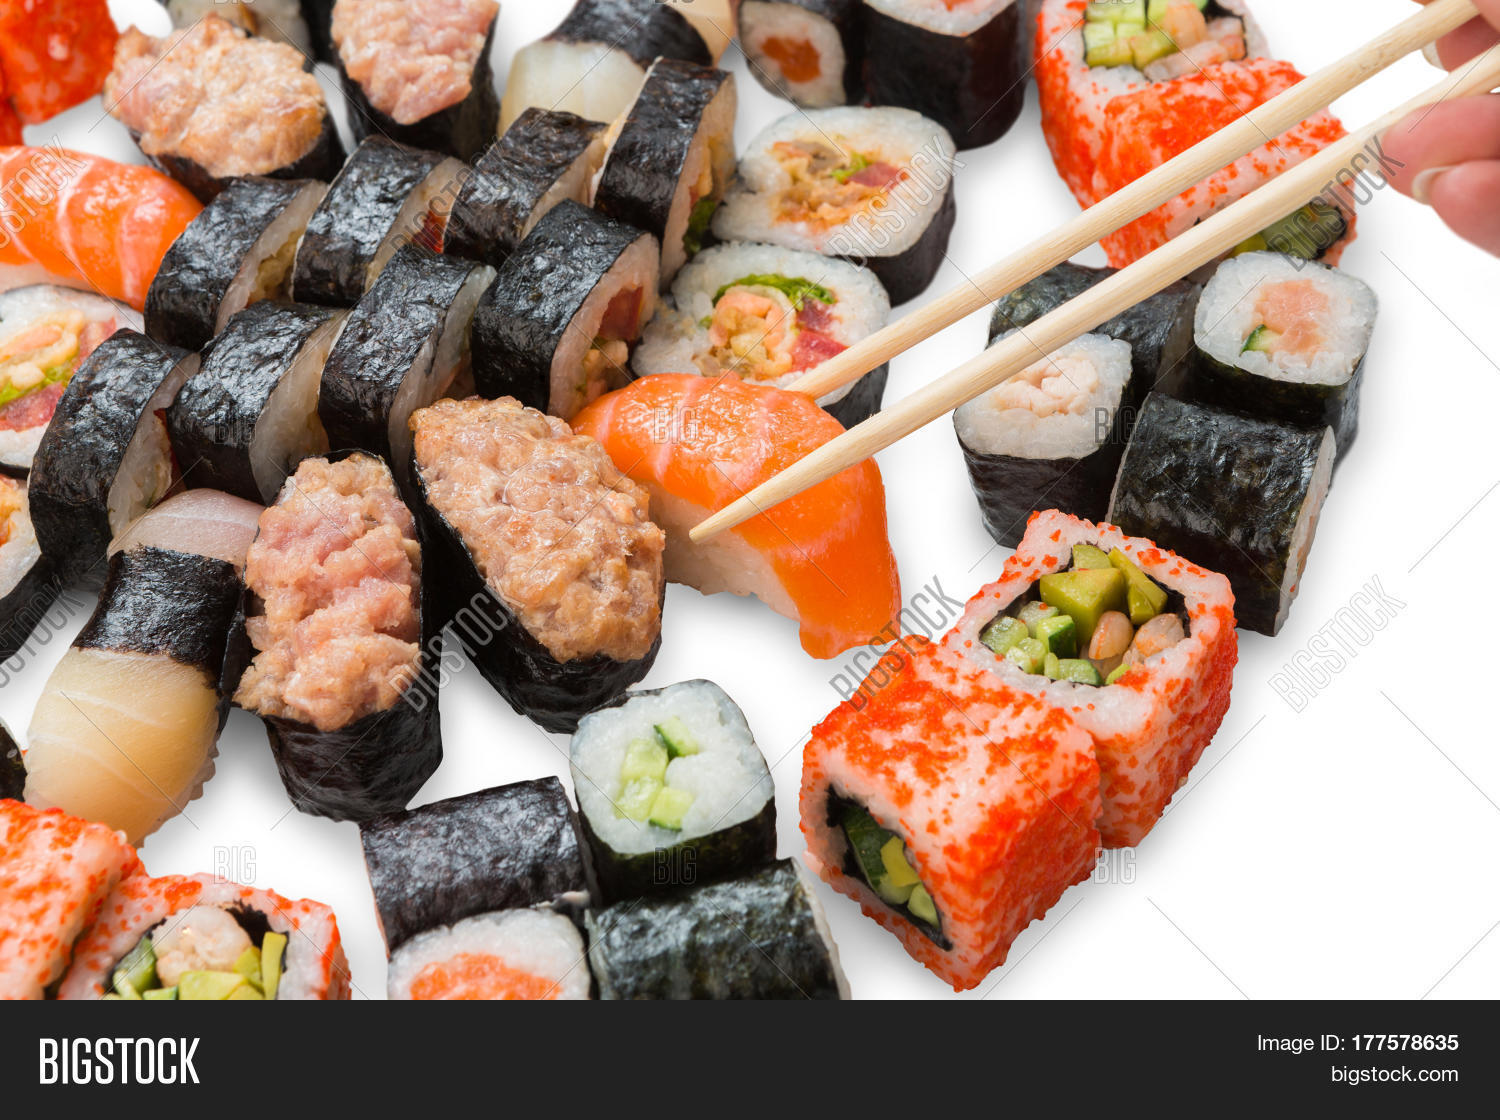 Japanese food restaurant delivery image photo bigstock for Asian cuisine delivery